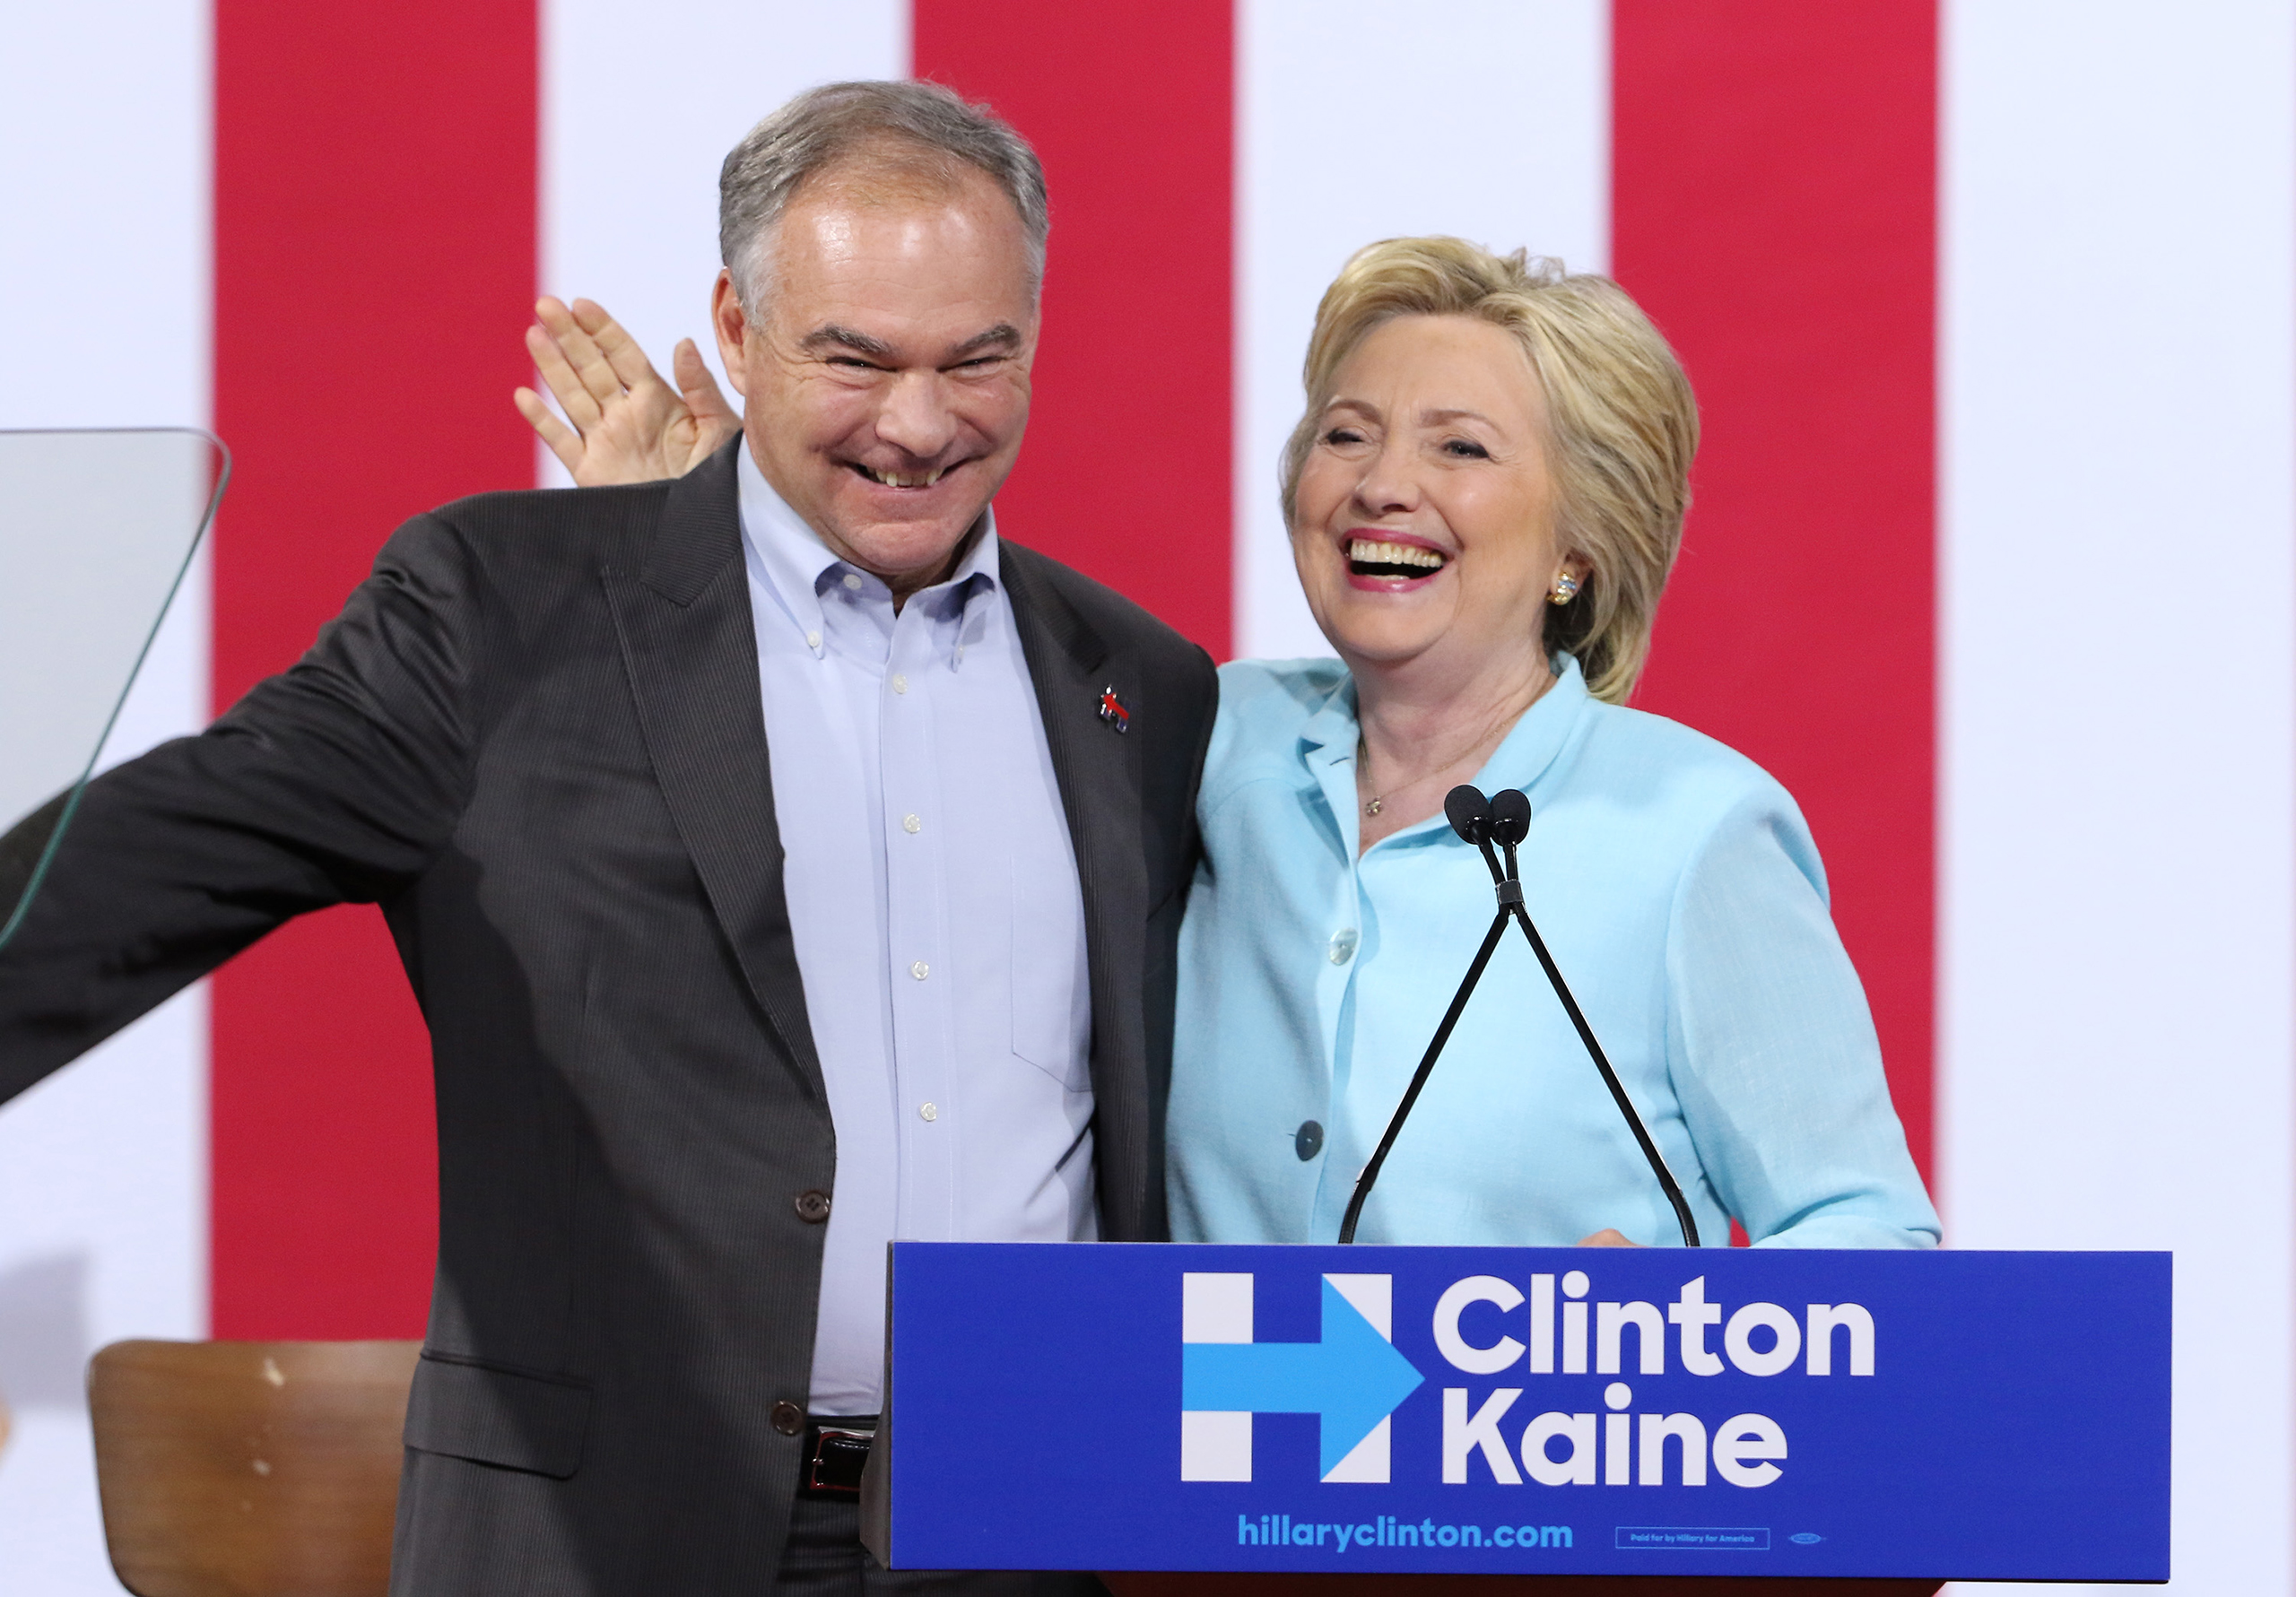 Hillary Clinton and Democratic vice presidential candidate U.S. Sen. Tim Kaine attend a campaign rally at Florida International University Panther Arena in Miami, Fla., on July 23, 2016.